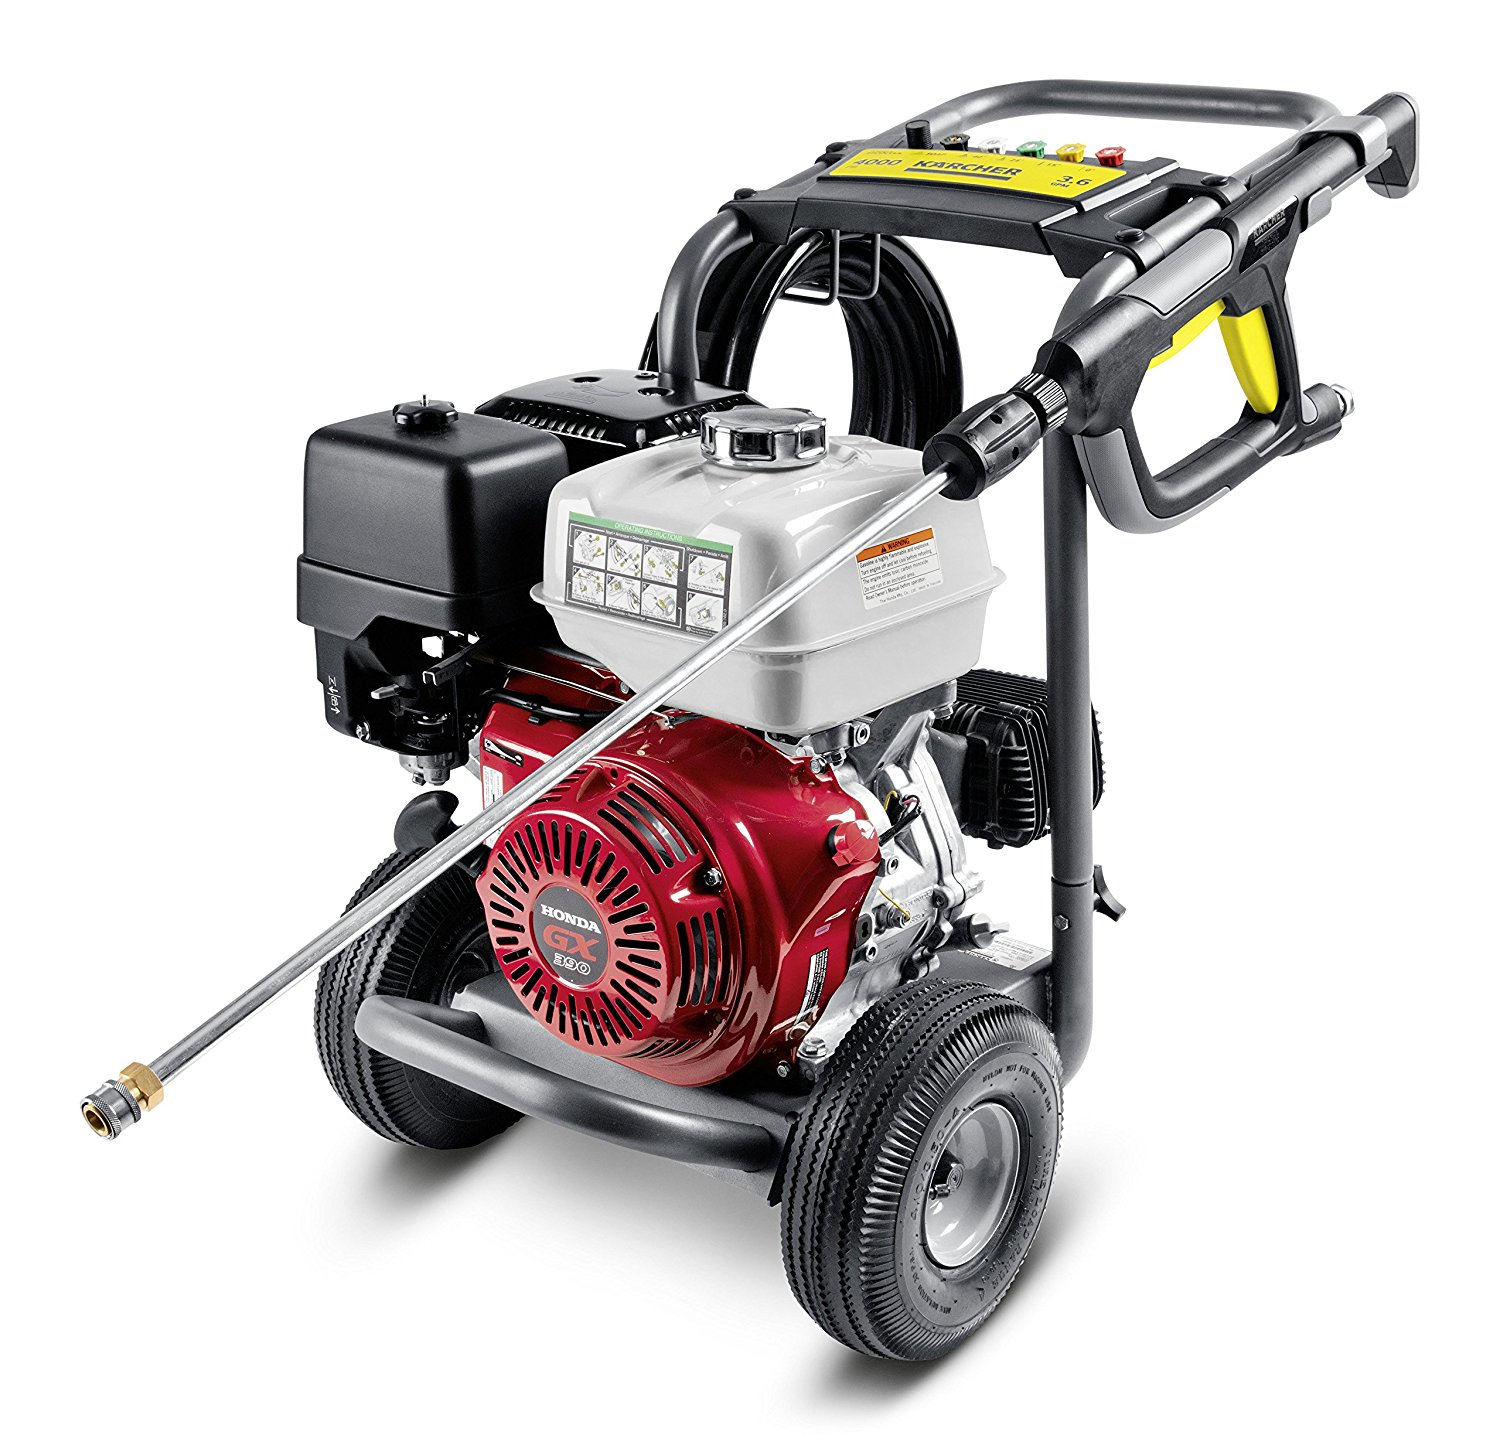 Karcher commercial power washer